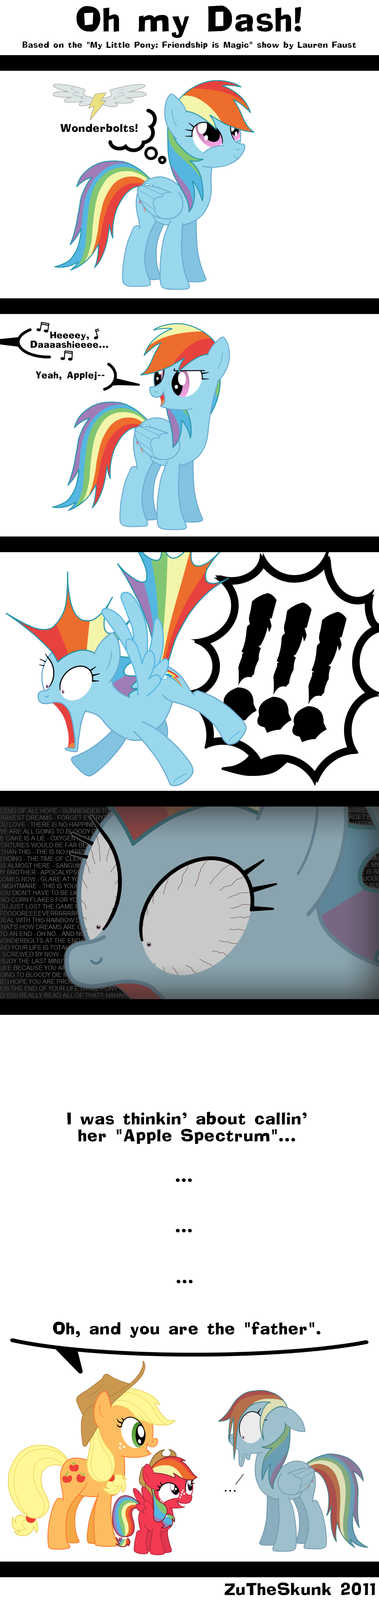 mlp__oh_my_dash_by_zutheskunk-d3gtpbf.png